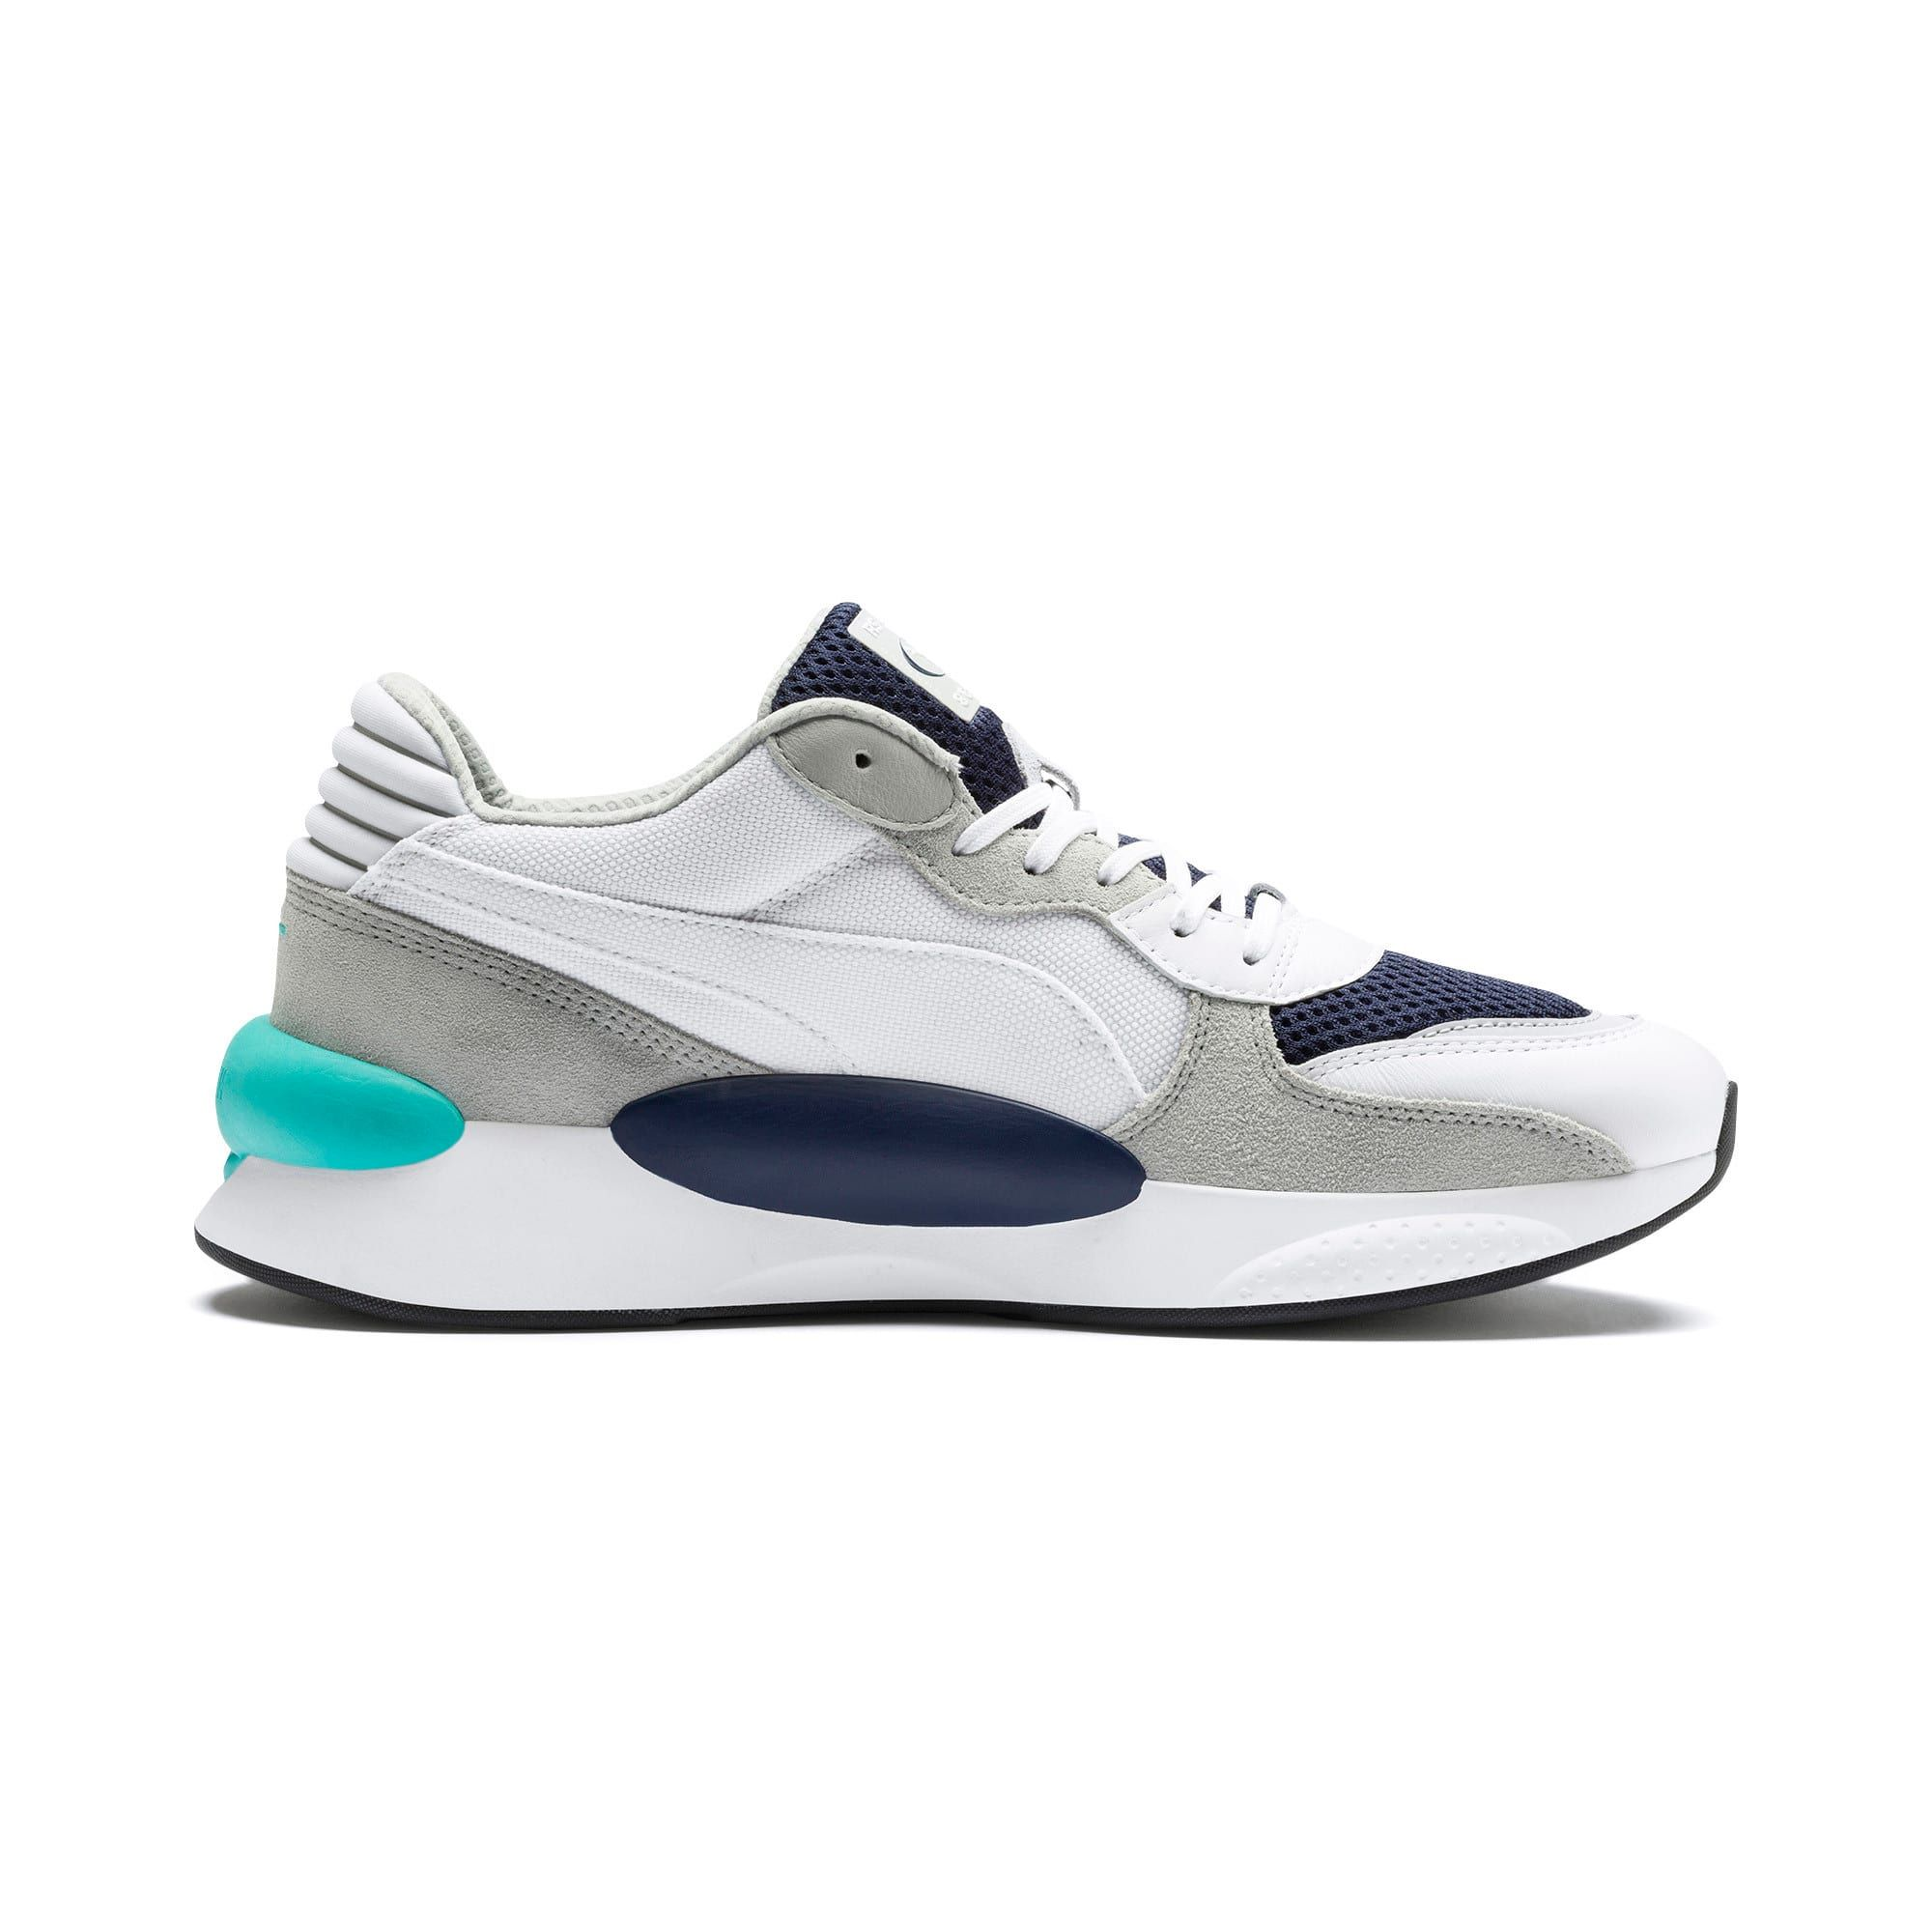 PUMA RS 9.8 Cosmic Trainers in White/Peacoat size 10.5 | Air ...